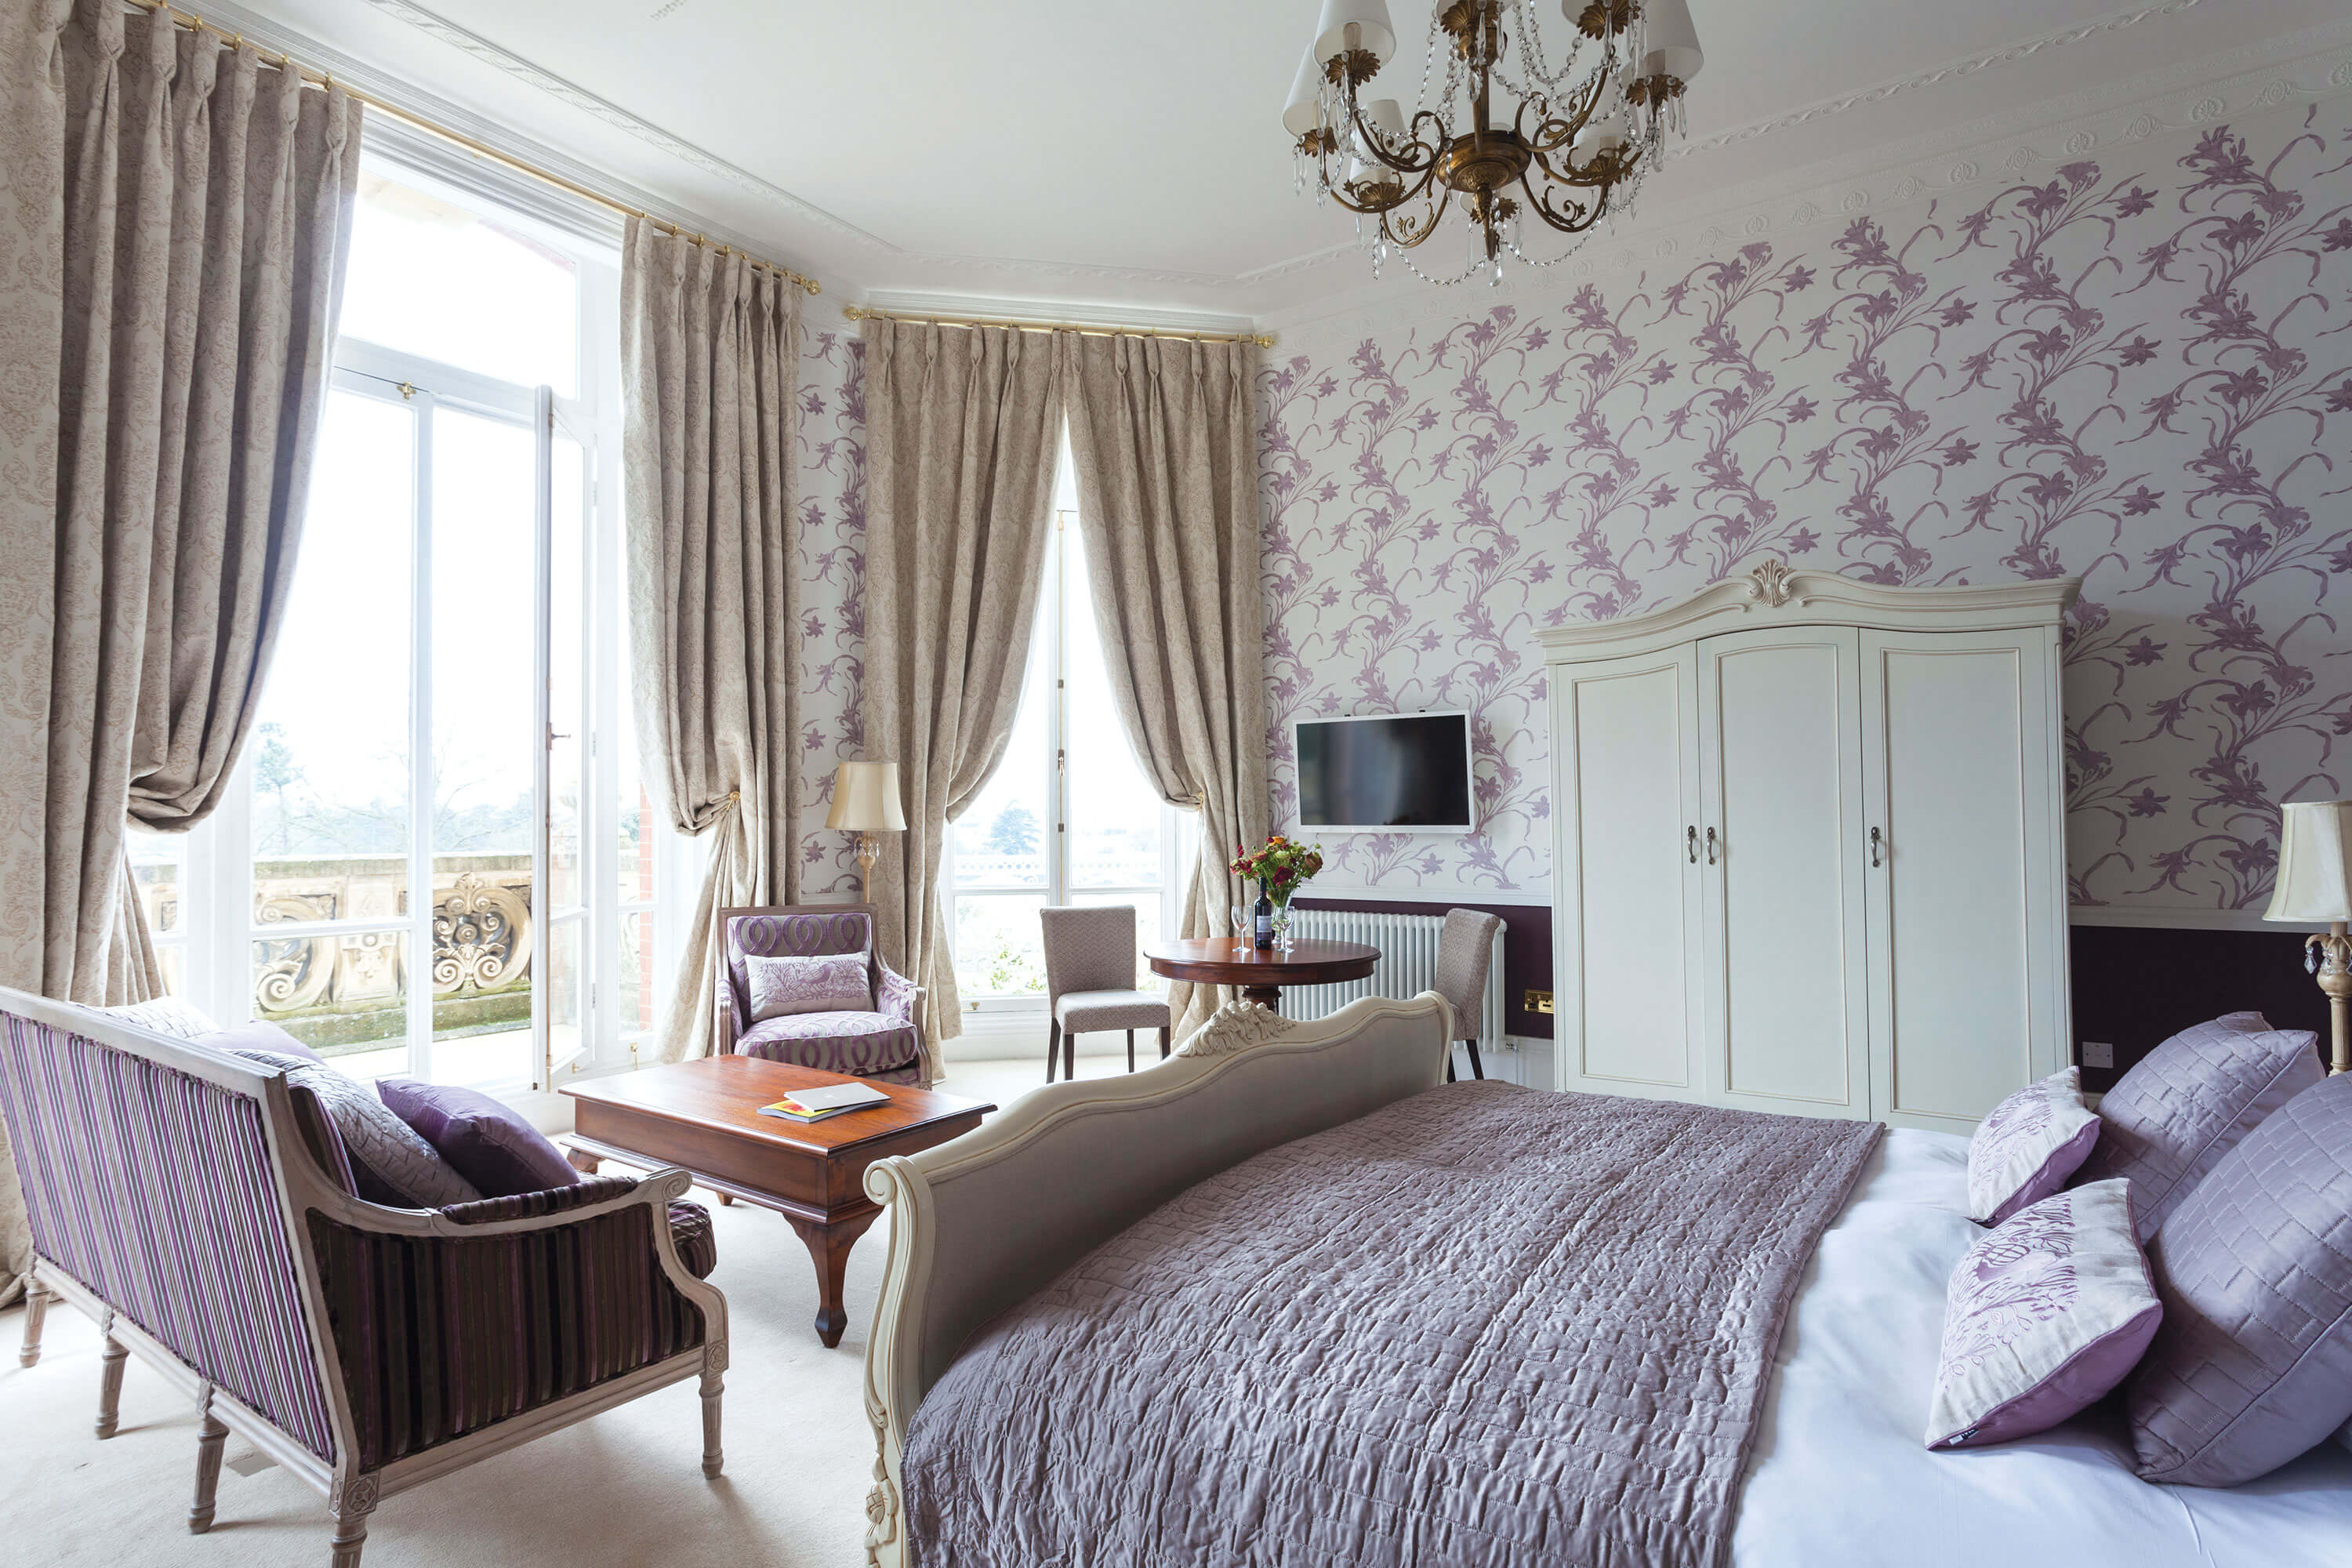 Interior photography for Chateau Impney by Mighty, hotel marketing agency Worcester